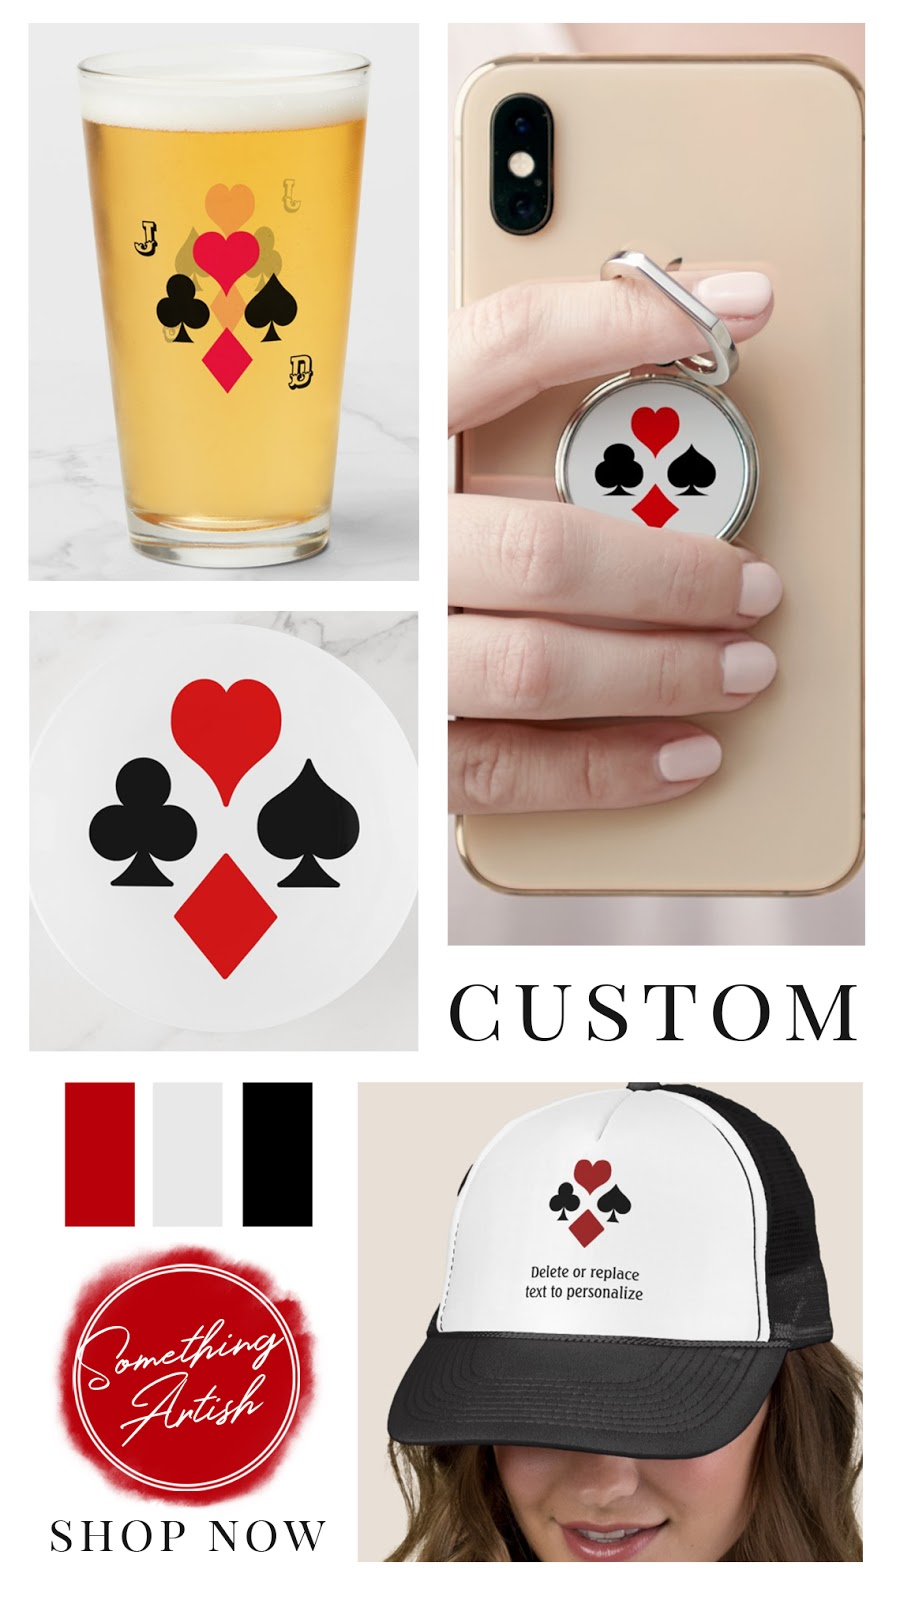 Personalized and monogrammed beer glass, phone grip, trucker cap, and trinket tray for holding poker chips. With playing card suit symbols; hear, spade, club, and diamond.